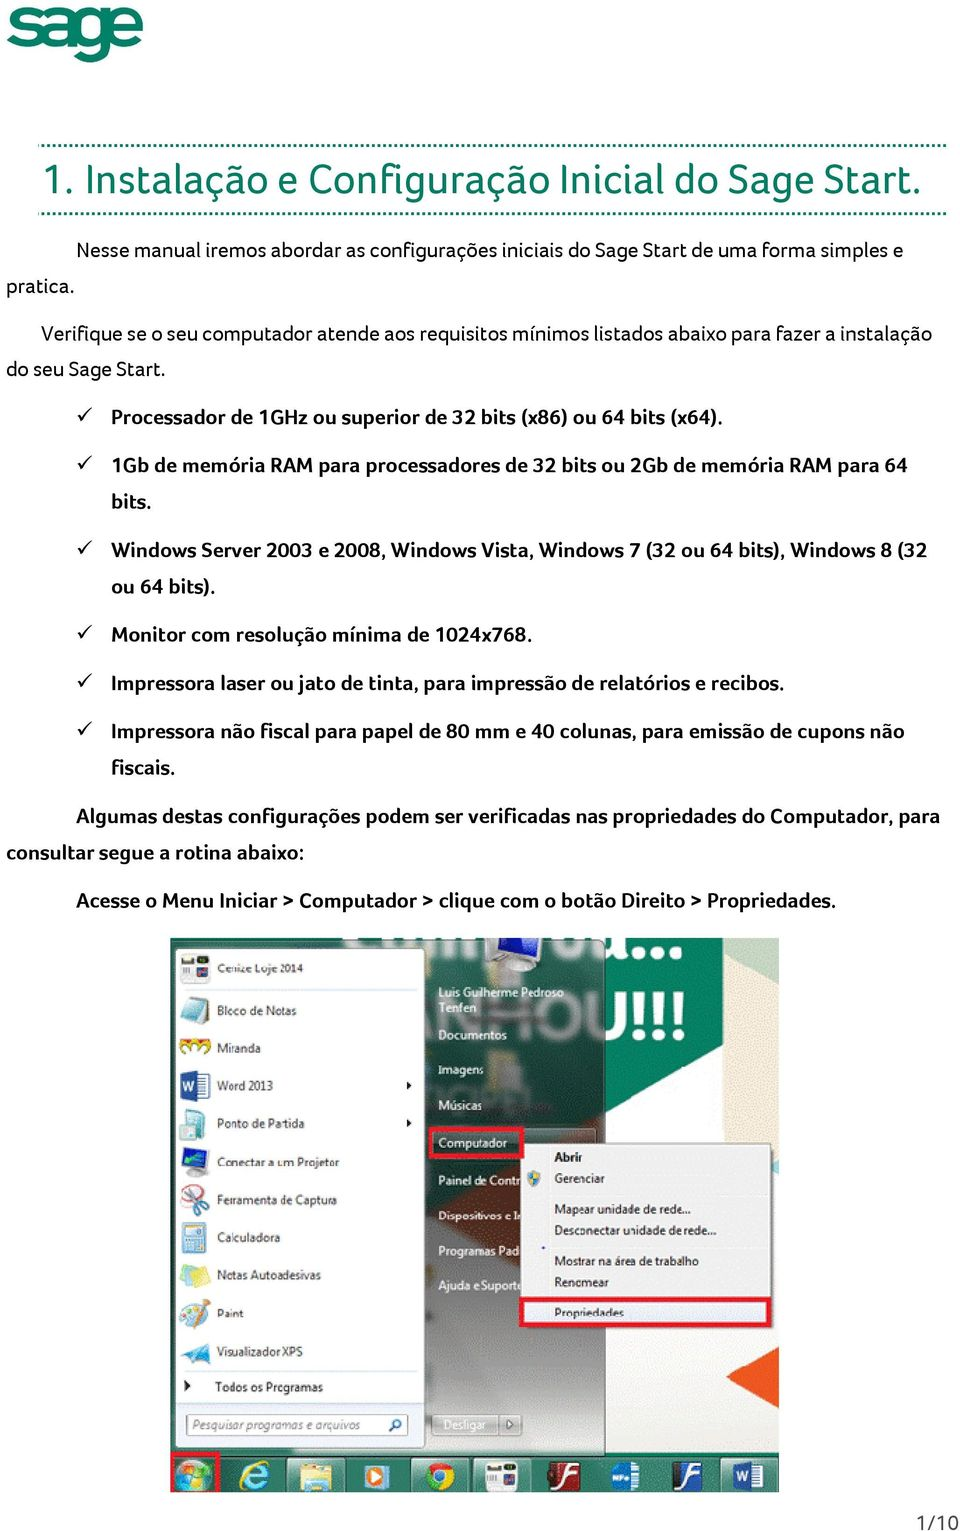 1Gb de memória RAM para processadores de 32 bits ou 2Gb de memória RAM para 64 bits. Windows Server 2003 e 2008, Windows Vista, Windows 7 (32 ou 64 bits), Windows 8 (32 ou 64 bits).